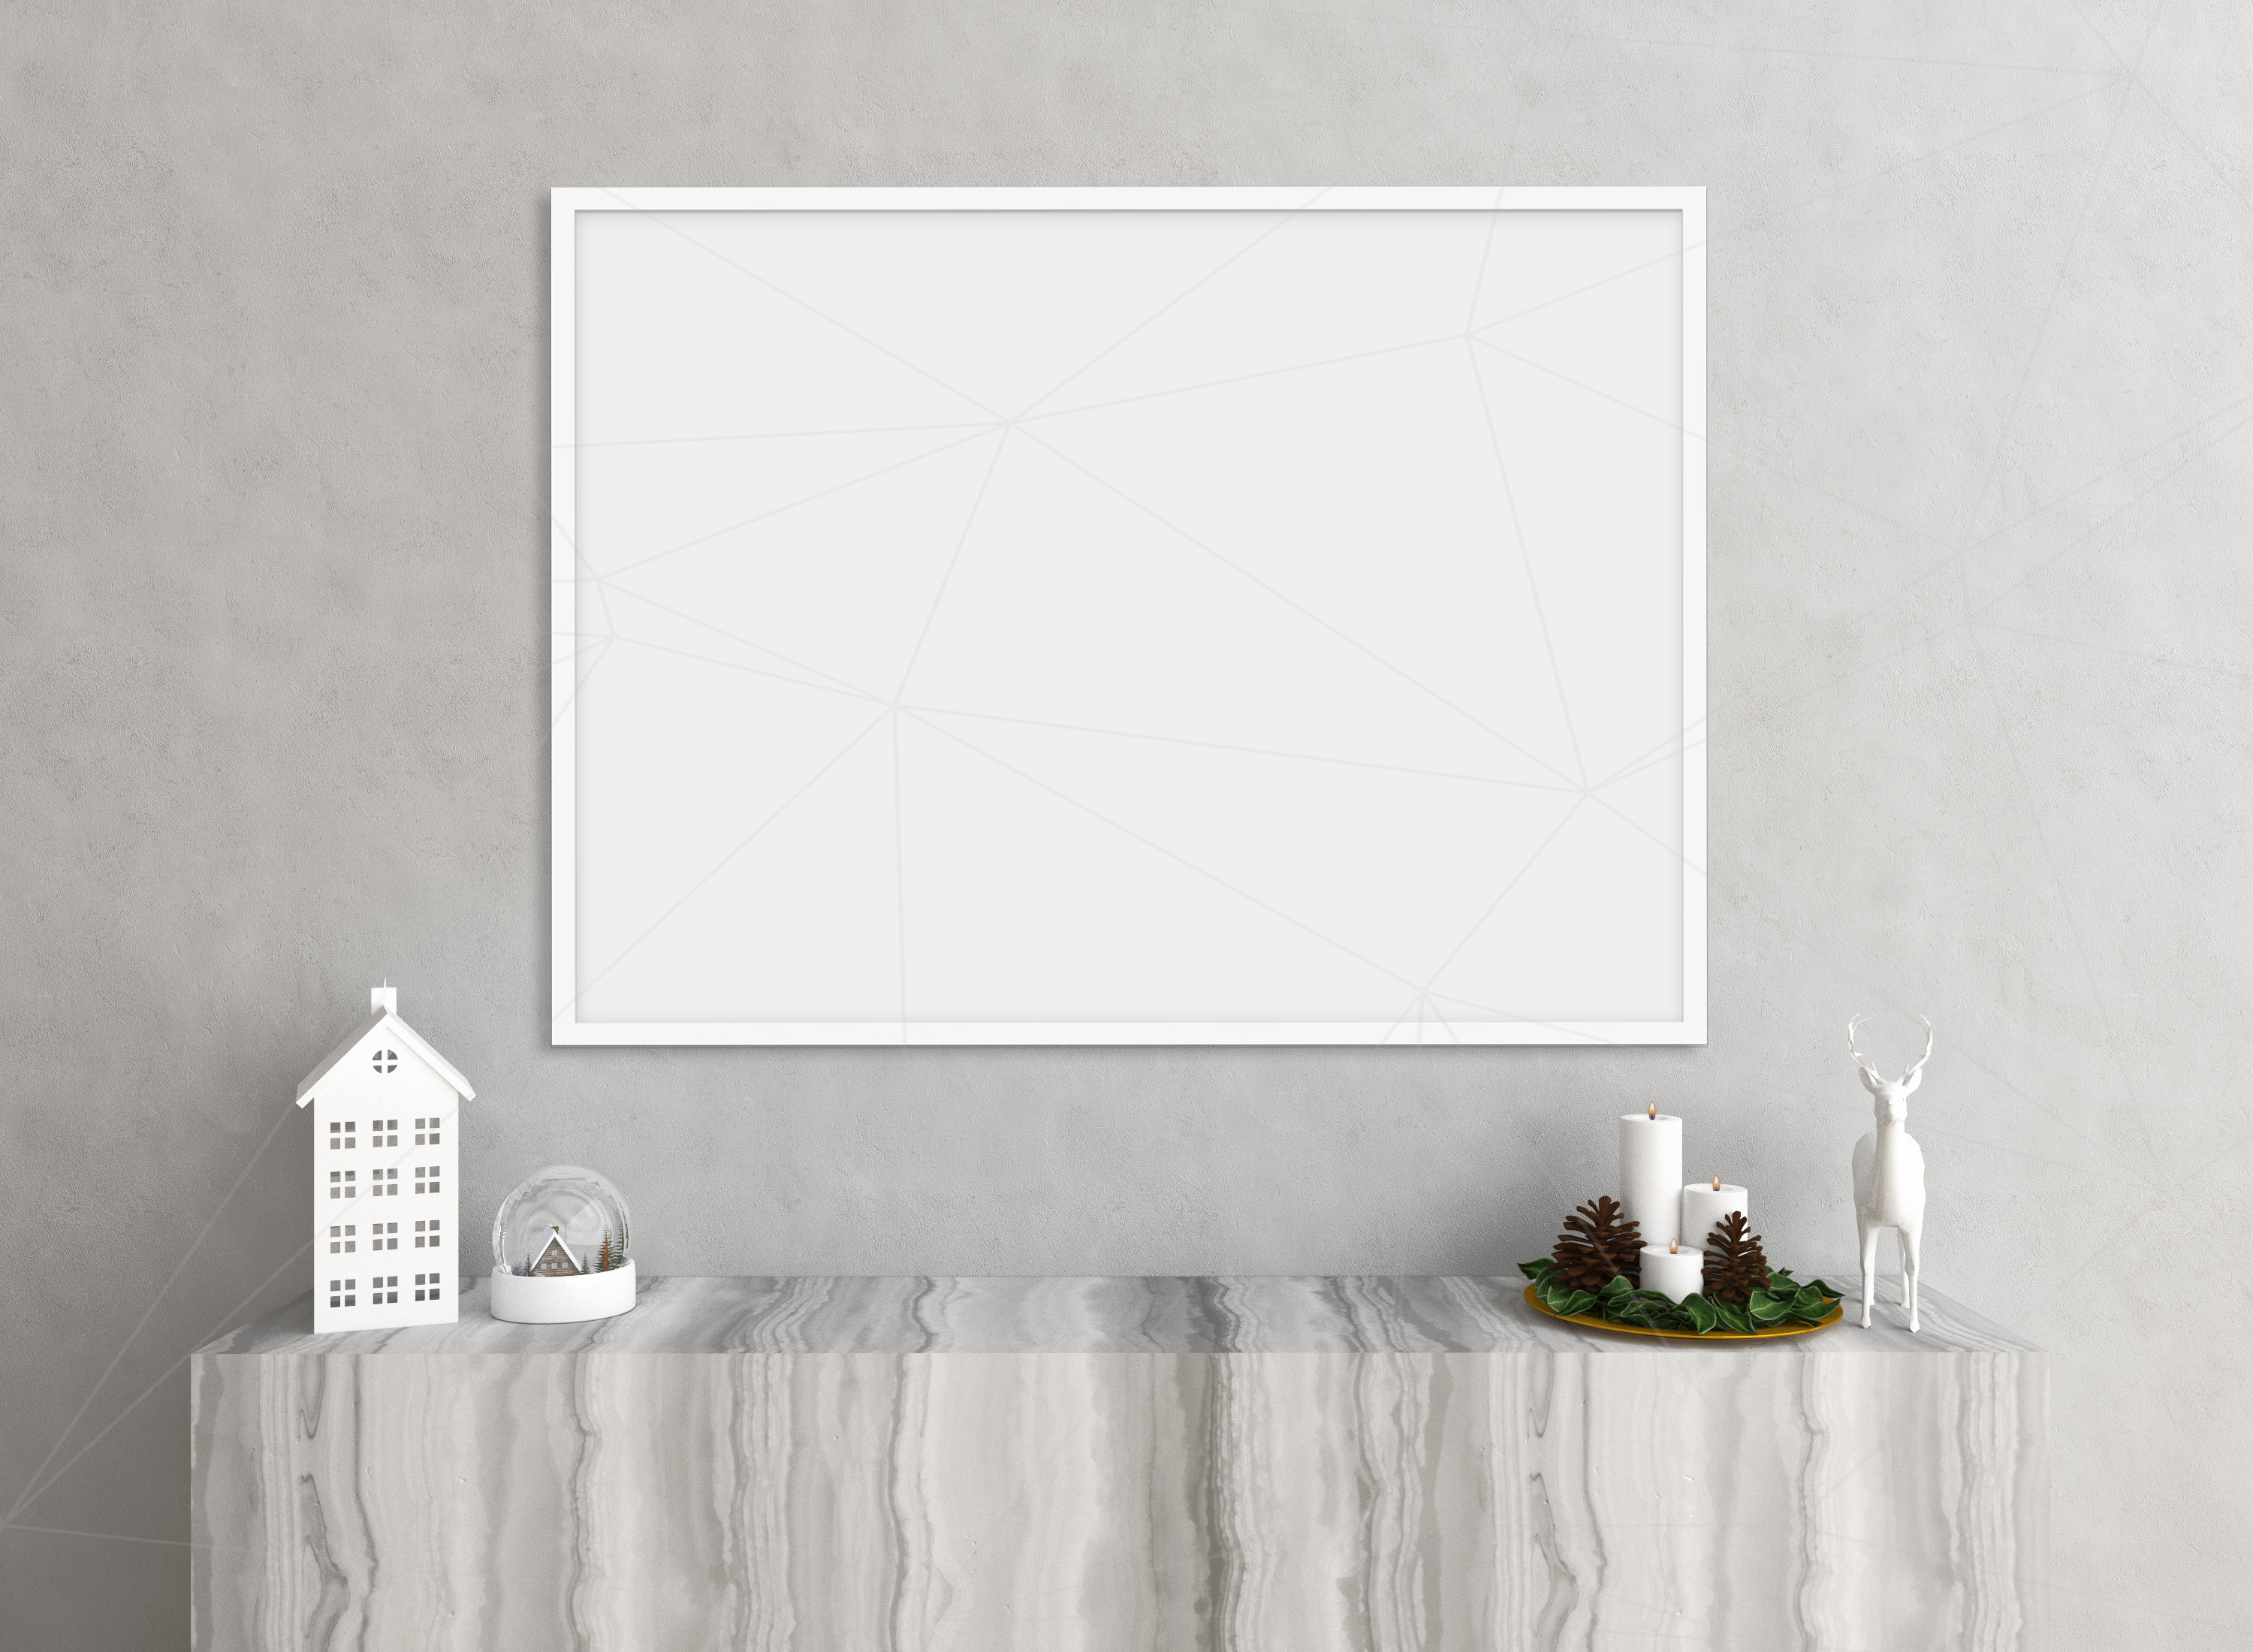 Christmas interior mockup bundle - blank wall mock up example image 4